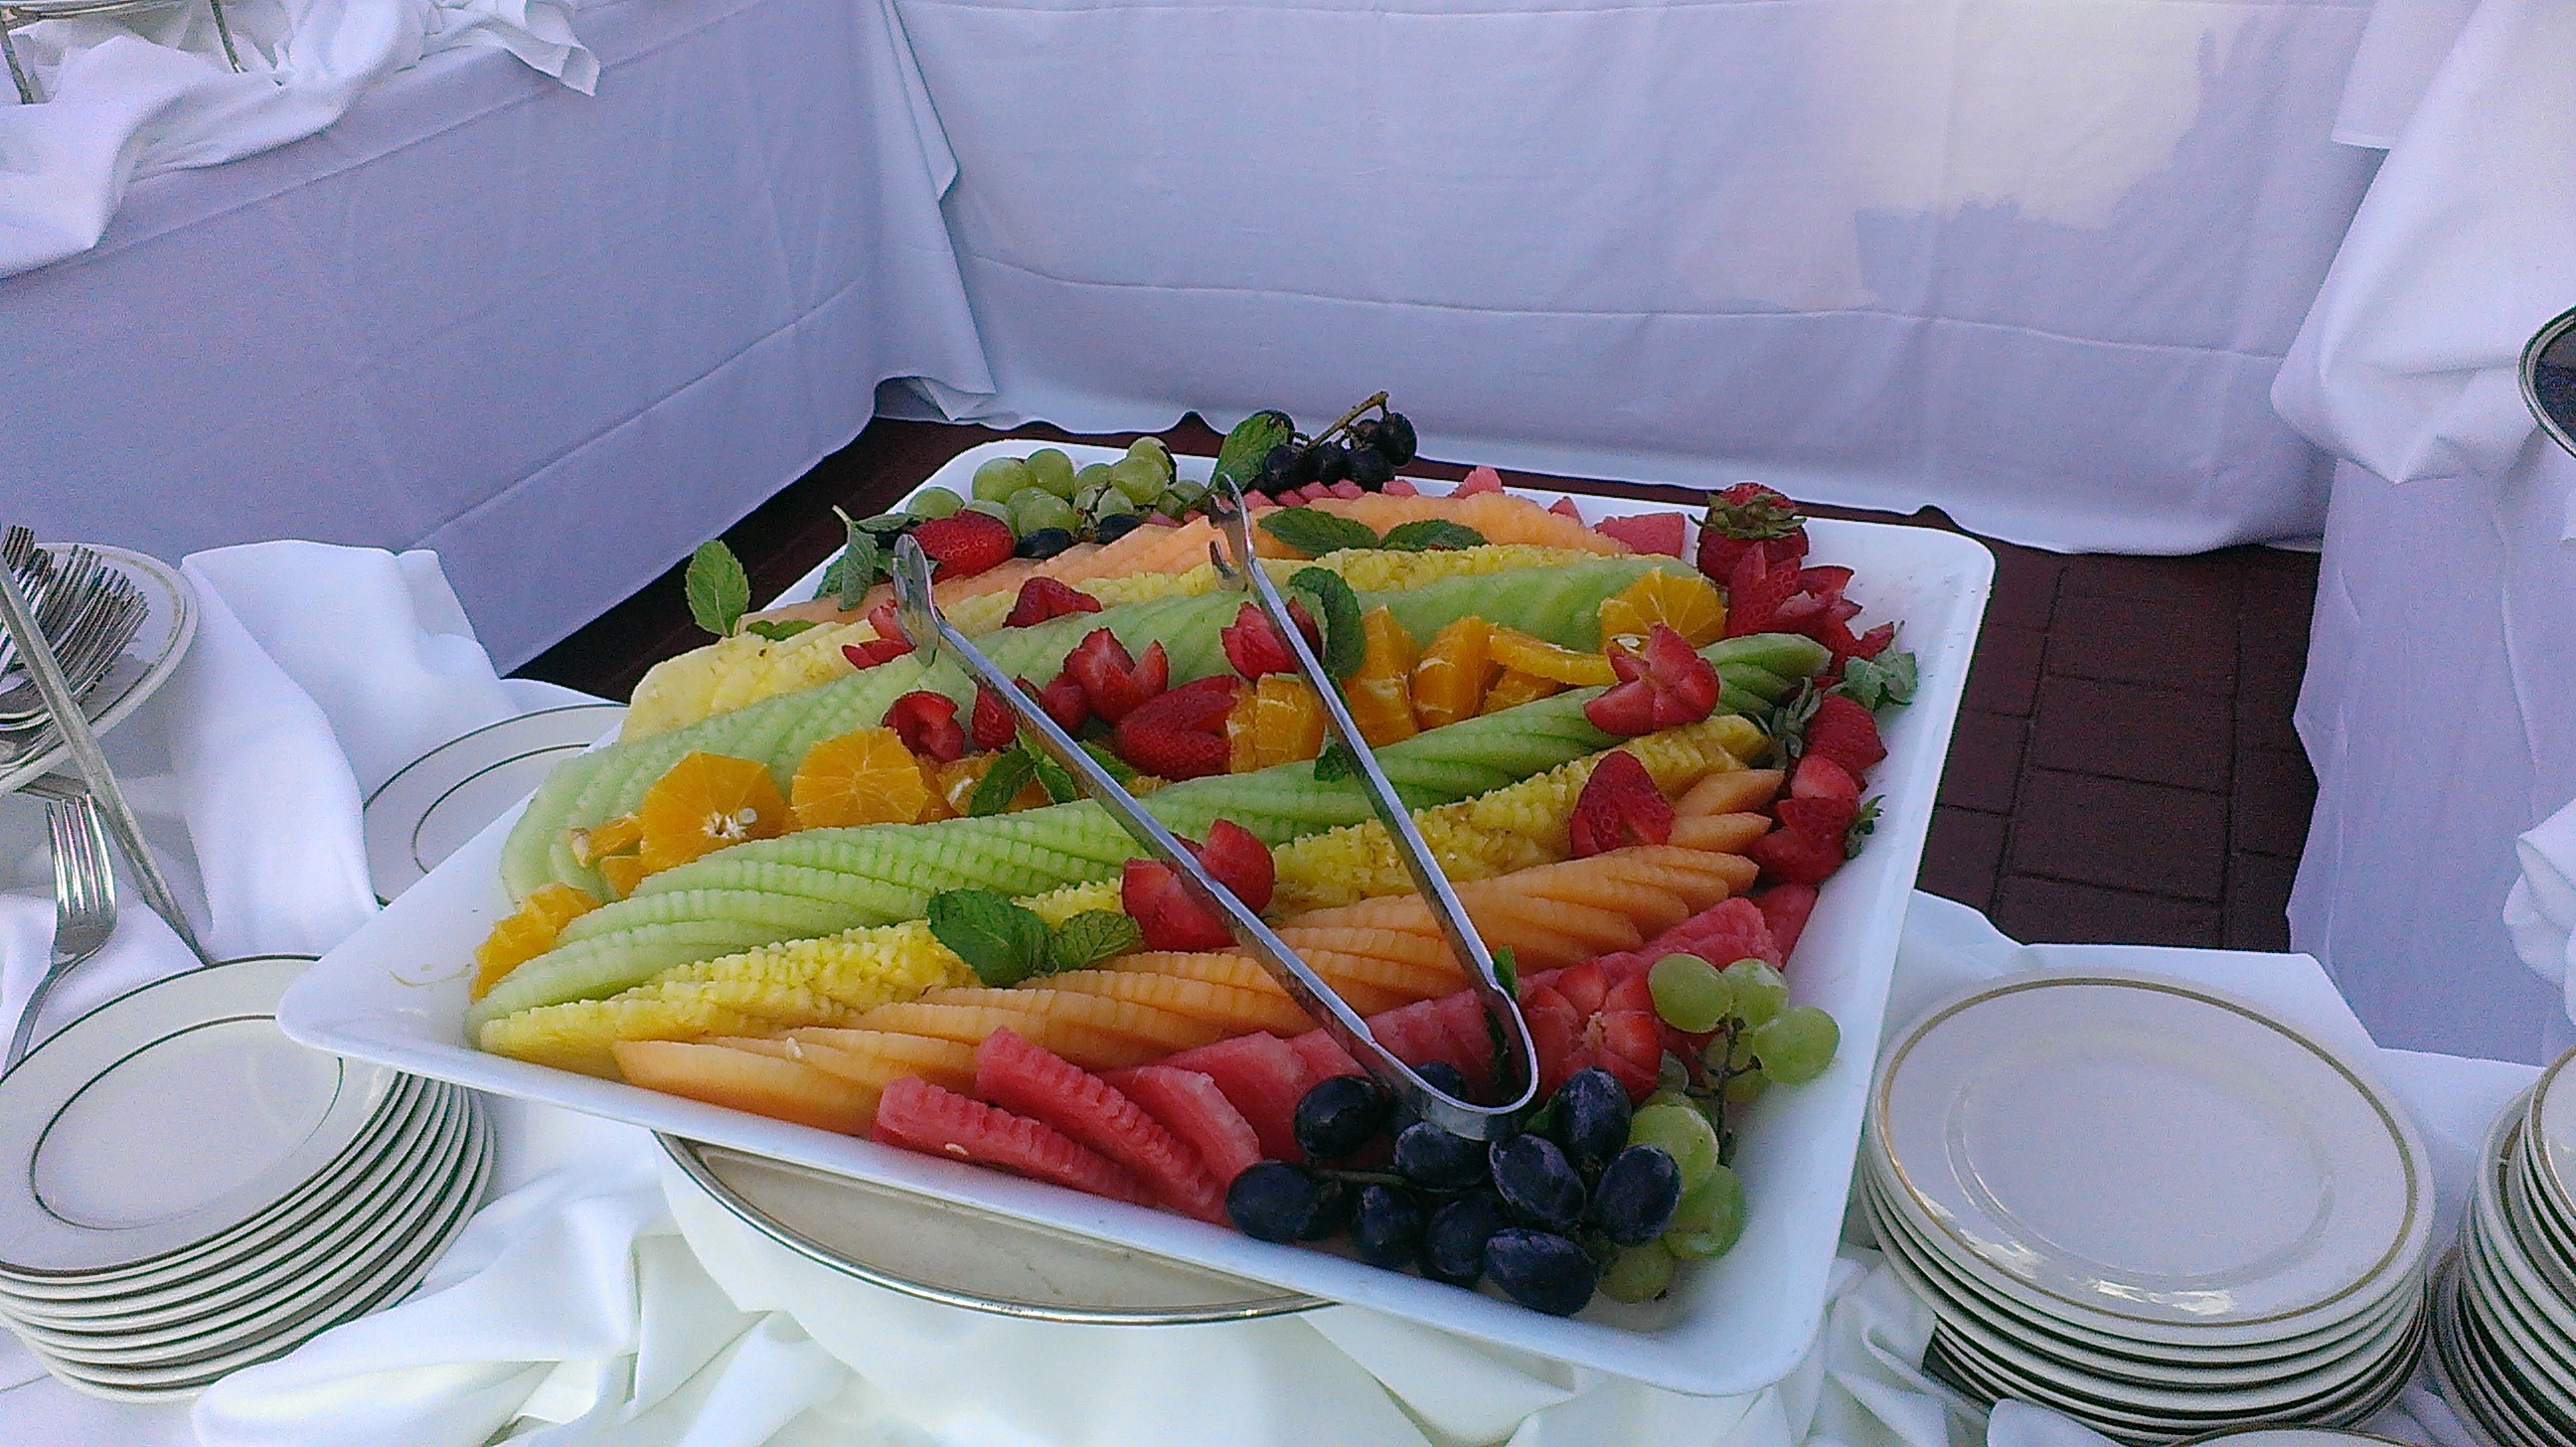 FRESH FRUIT CARVING STATION.jpg